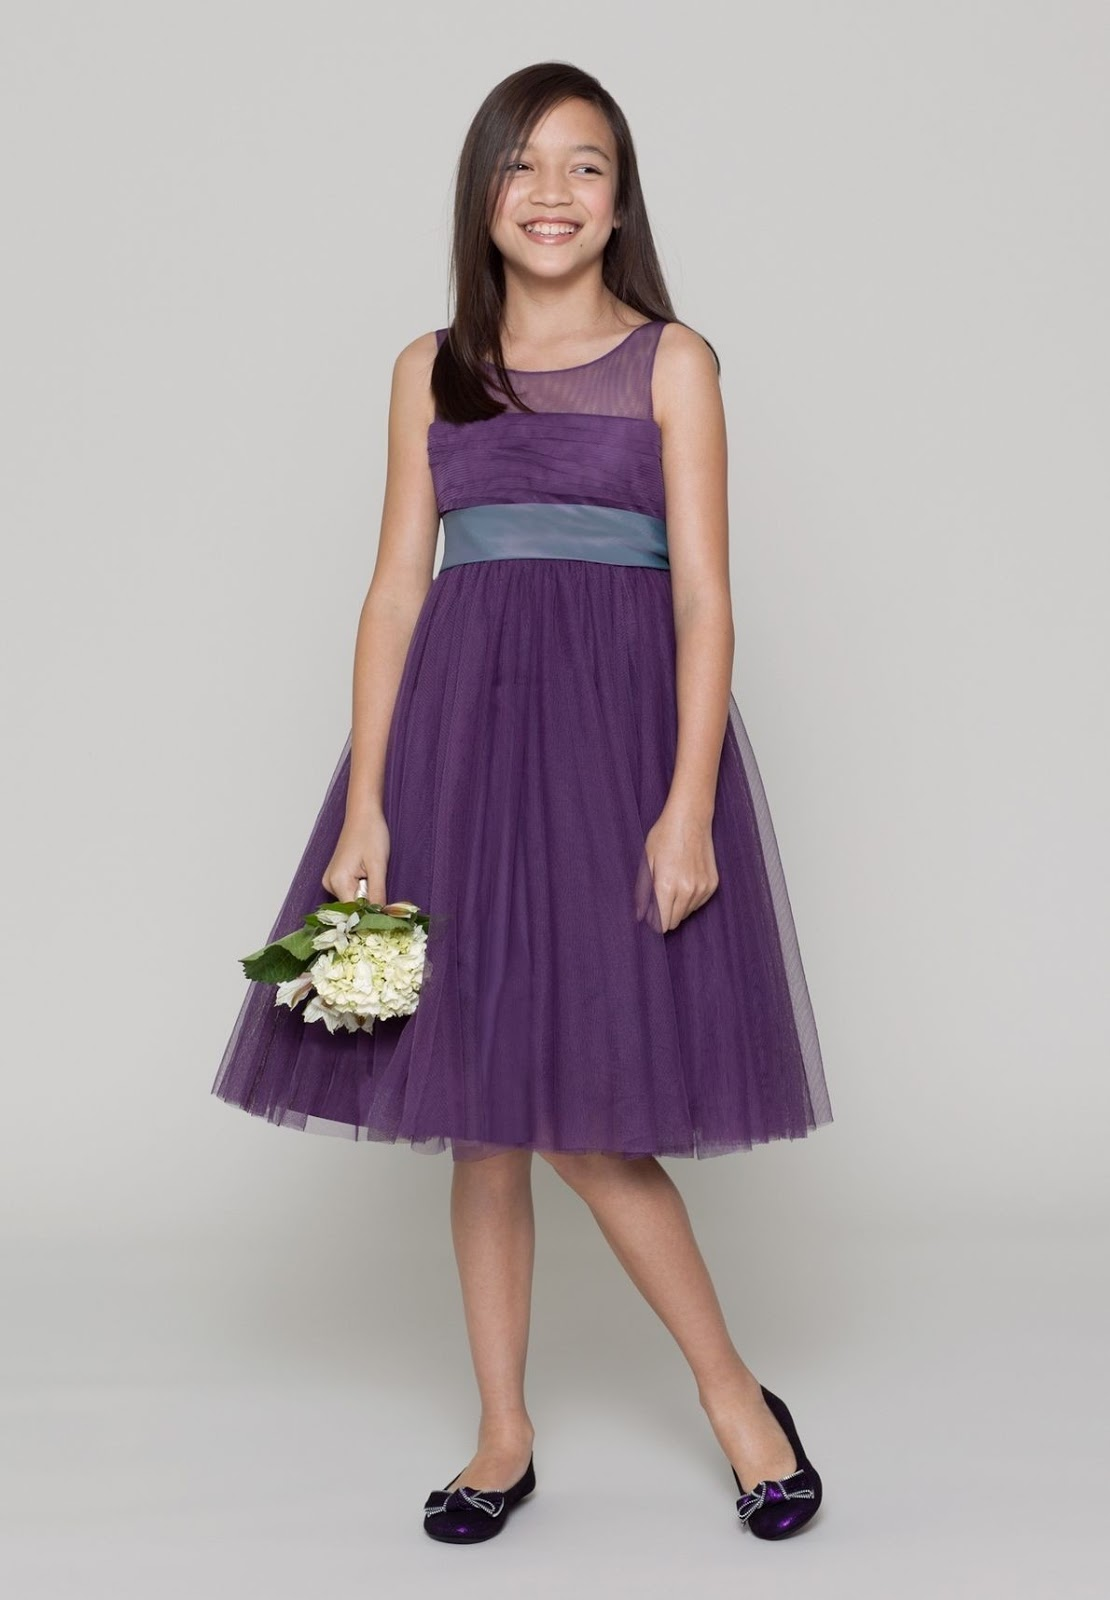 Junior bridesmaid dresses dressed up girl purple junior bridesmaid dresses ombrellifo Images